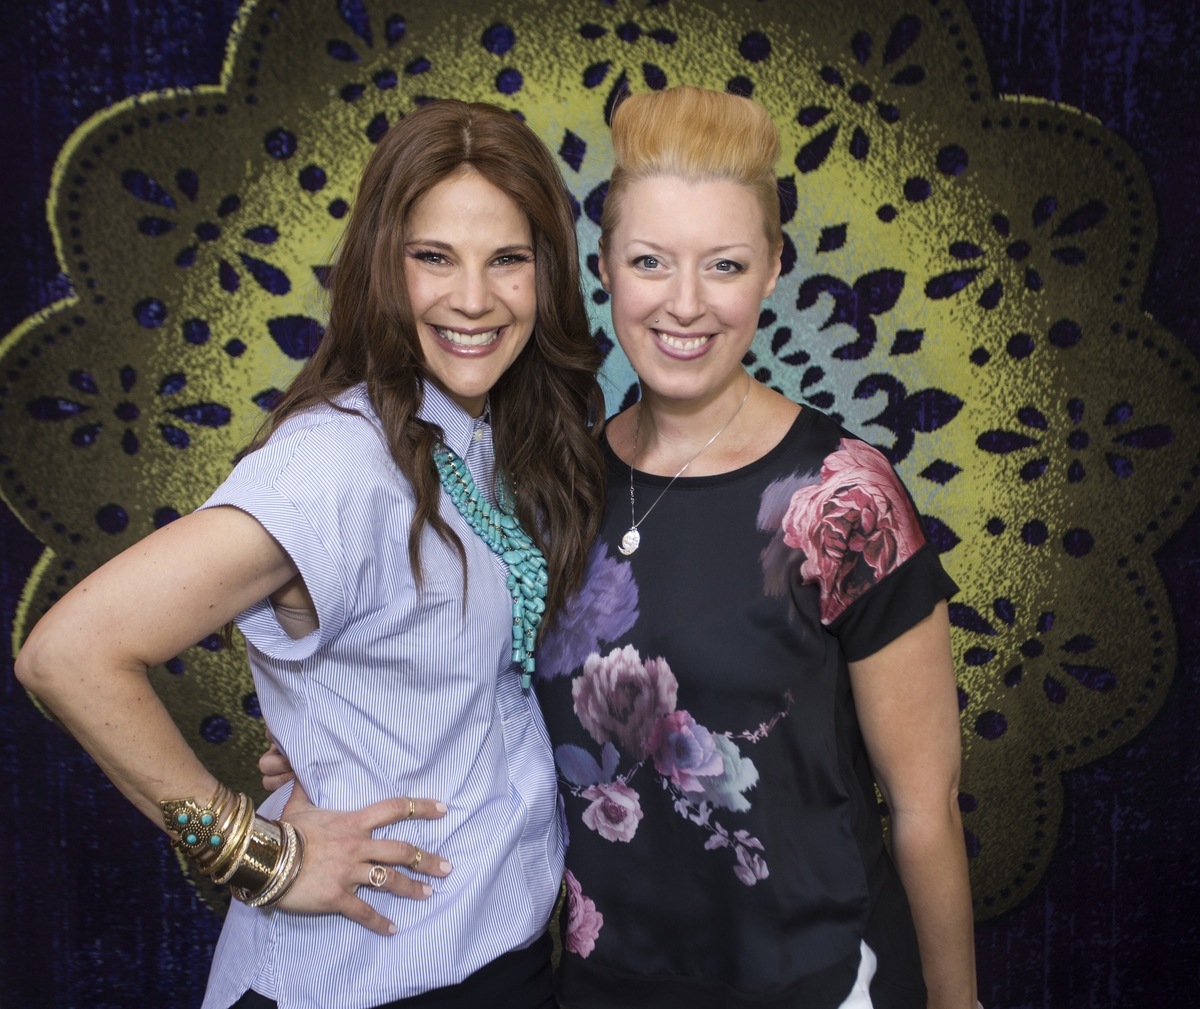 Stacy Garcia and Leah Jack at BDNY 2015 - Life-Styled.net